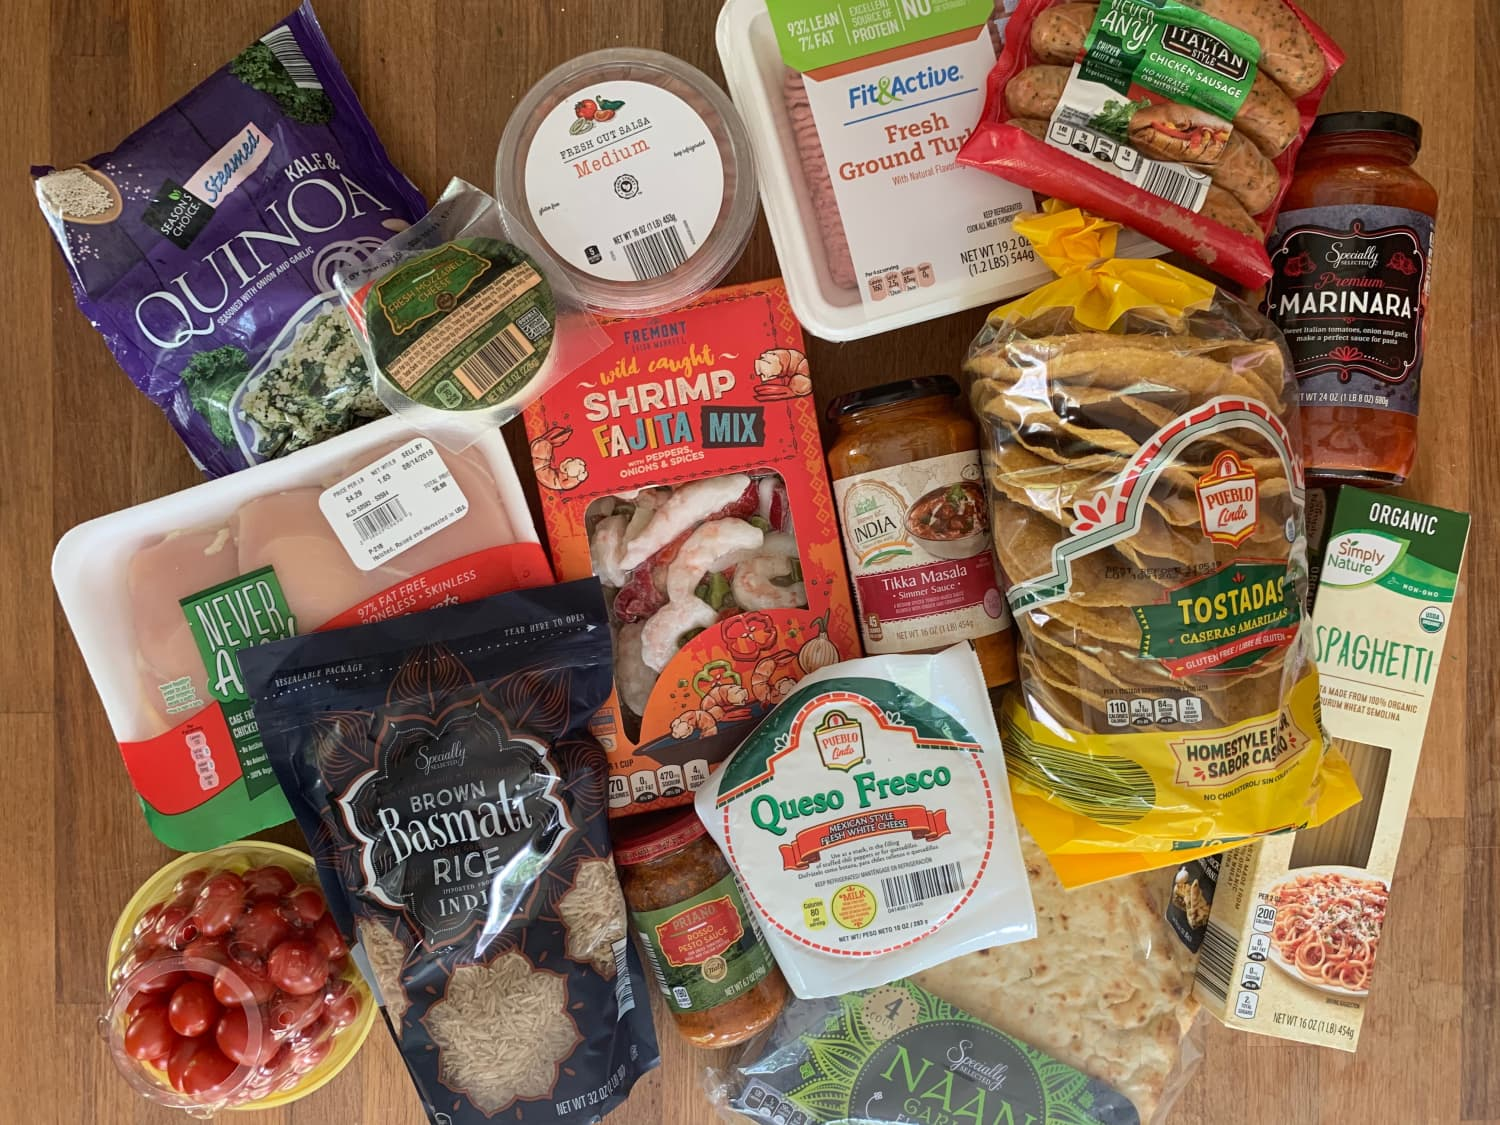 This Aldi Haul Cost Less than $50 — And Here's What I Made with It All